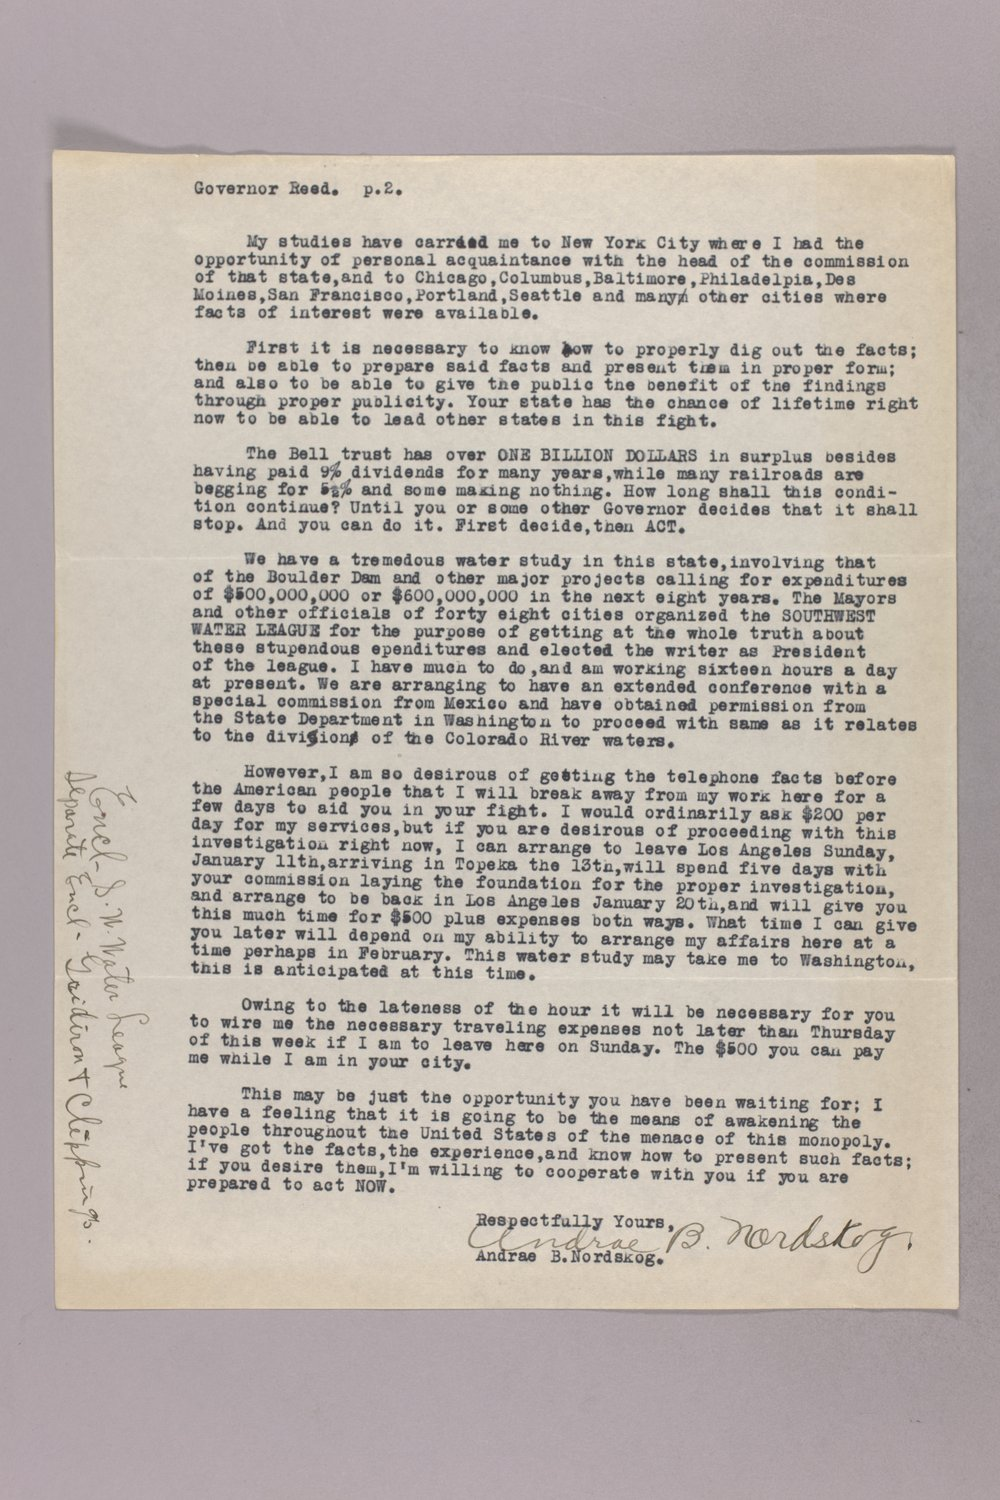 Governor Clyde M. Reed correspondence, Public Service Commission - 12